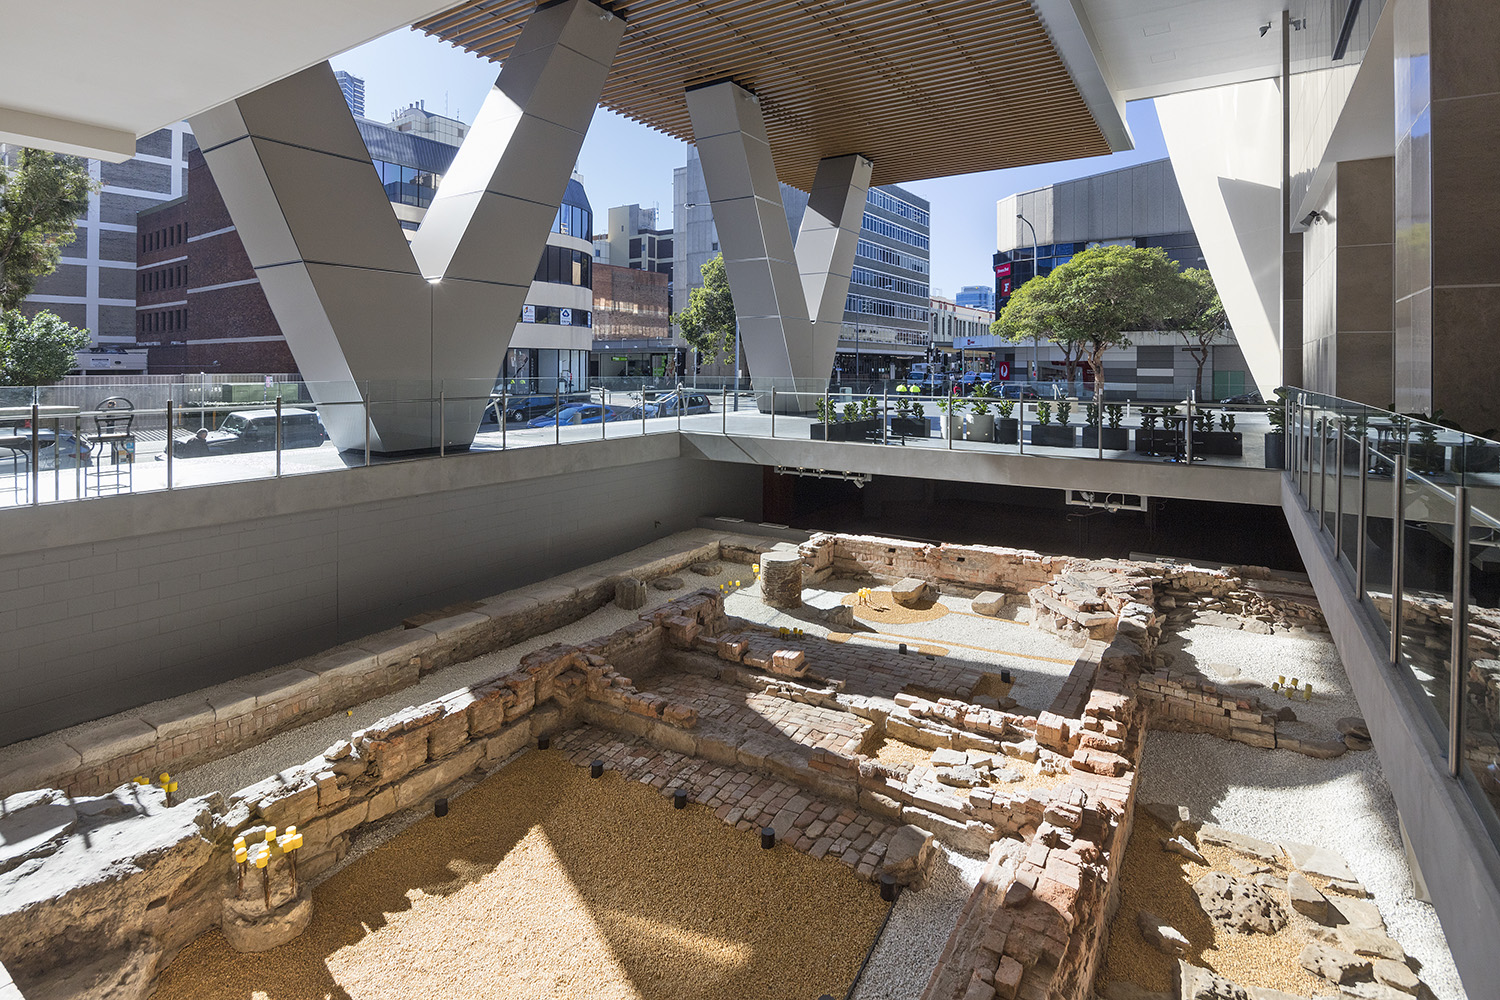 During excavations for the V by Crown development, the remains of early European convict settlements were discovered. Archaeological analysis revealed these huts to have been established during the first wave of European settlement in Australia.